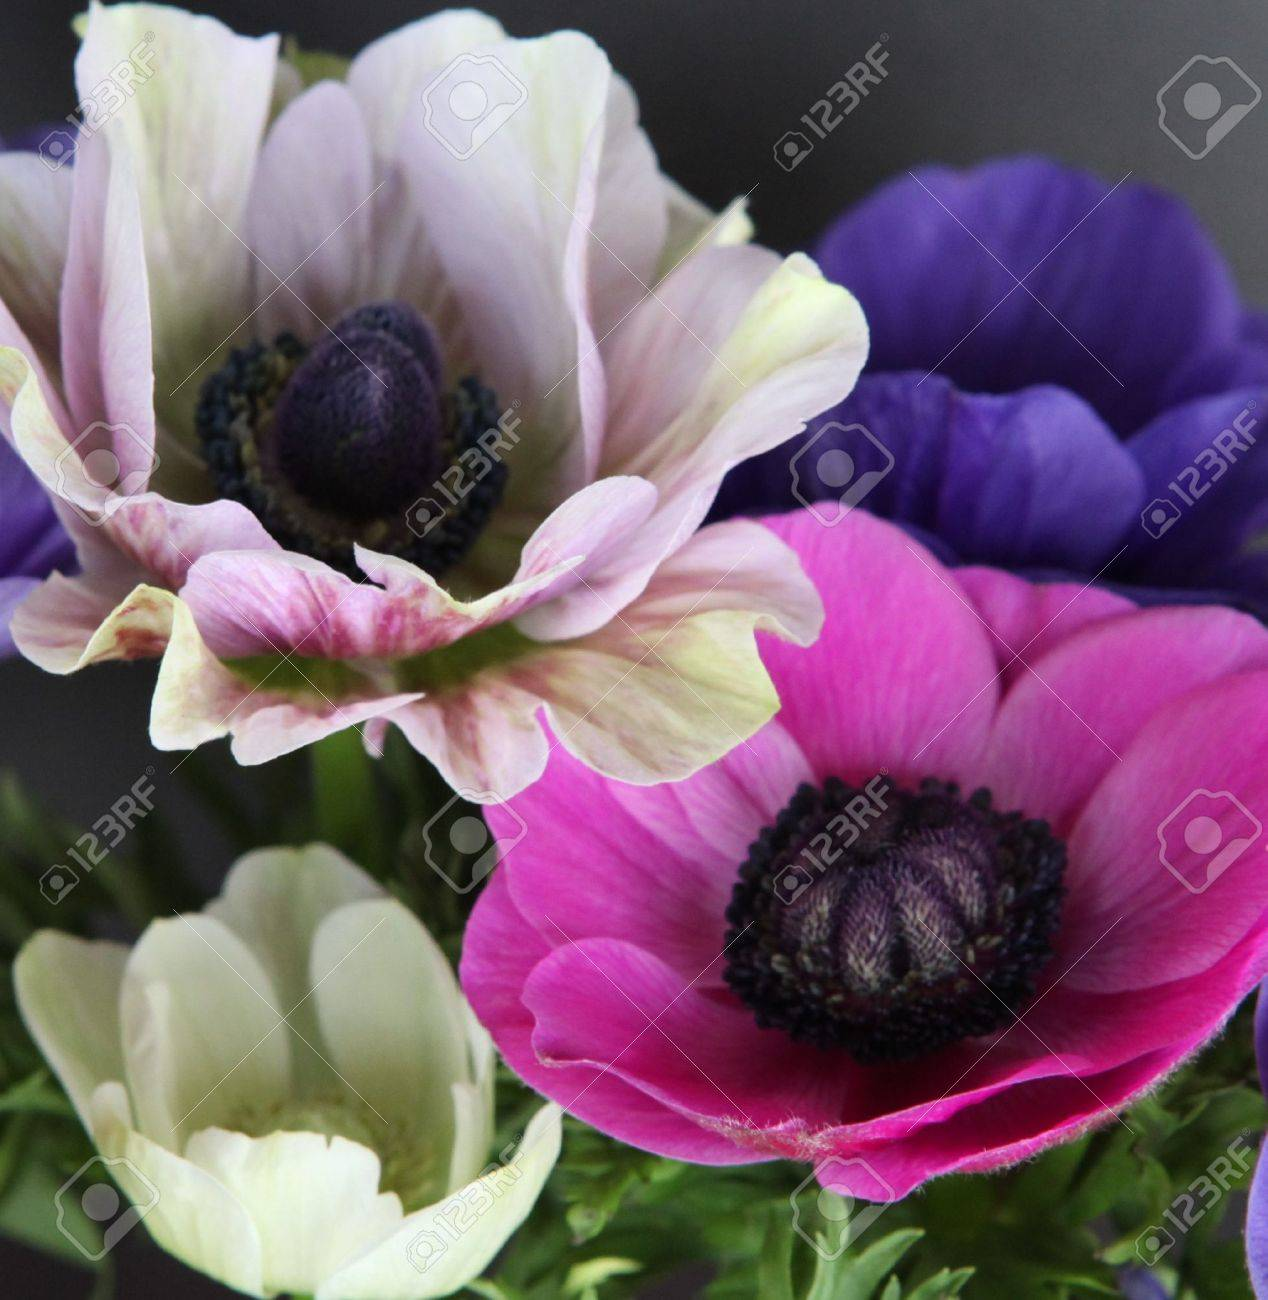 colorful poppies stock photo, picture and royalty free image, Beautiful flower